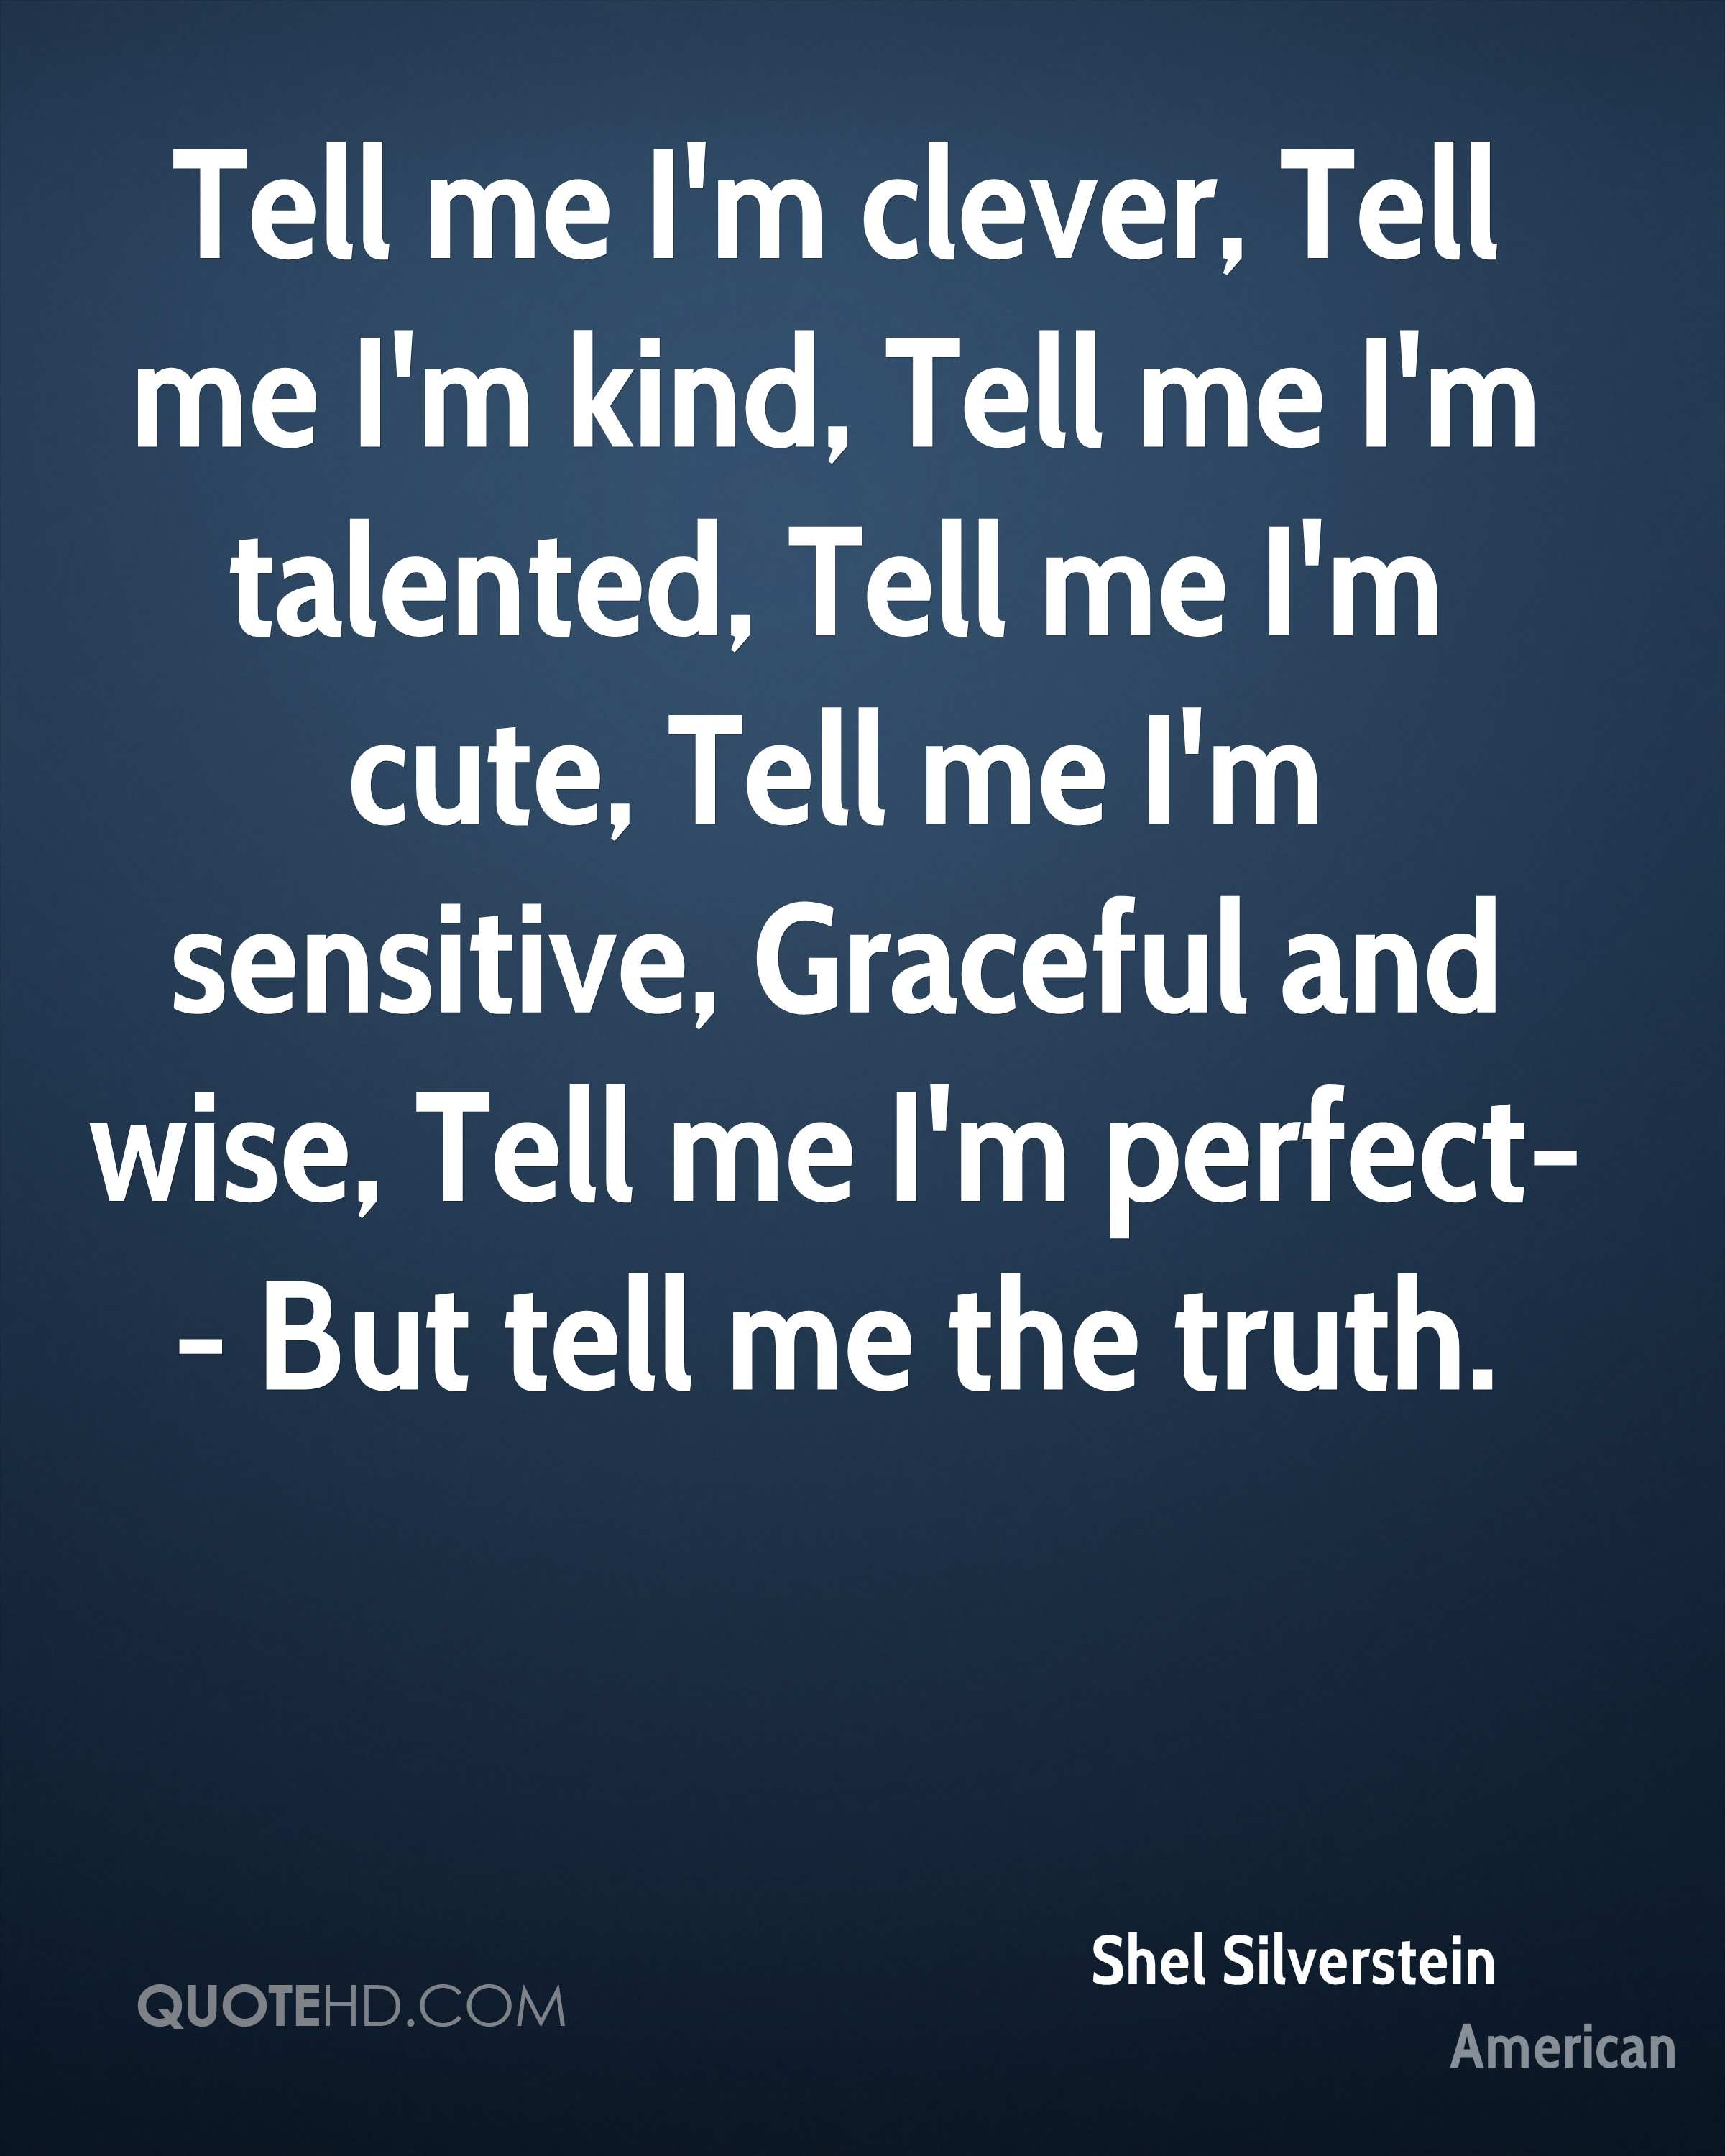 Tell me I'm clever, Tell me I'm kind, Tell me I'm talented, Tell me I'm cute, Tell me I'm sensitive, Graceful and wise, Tell me I'm perfect-- But tell me the truth.